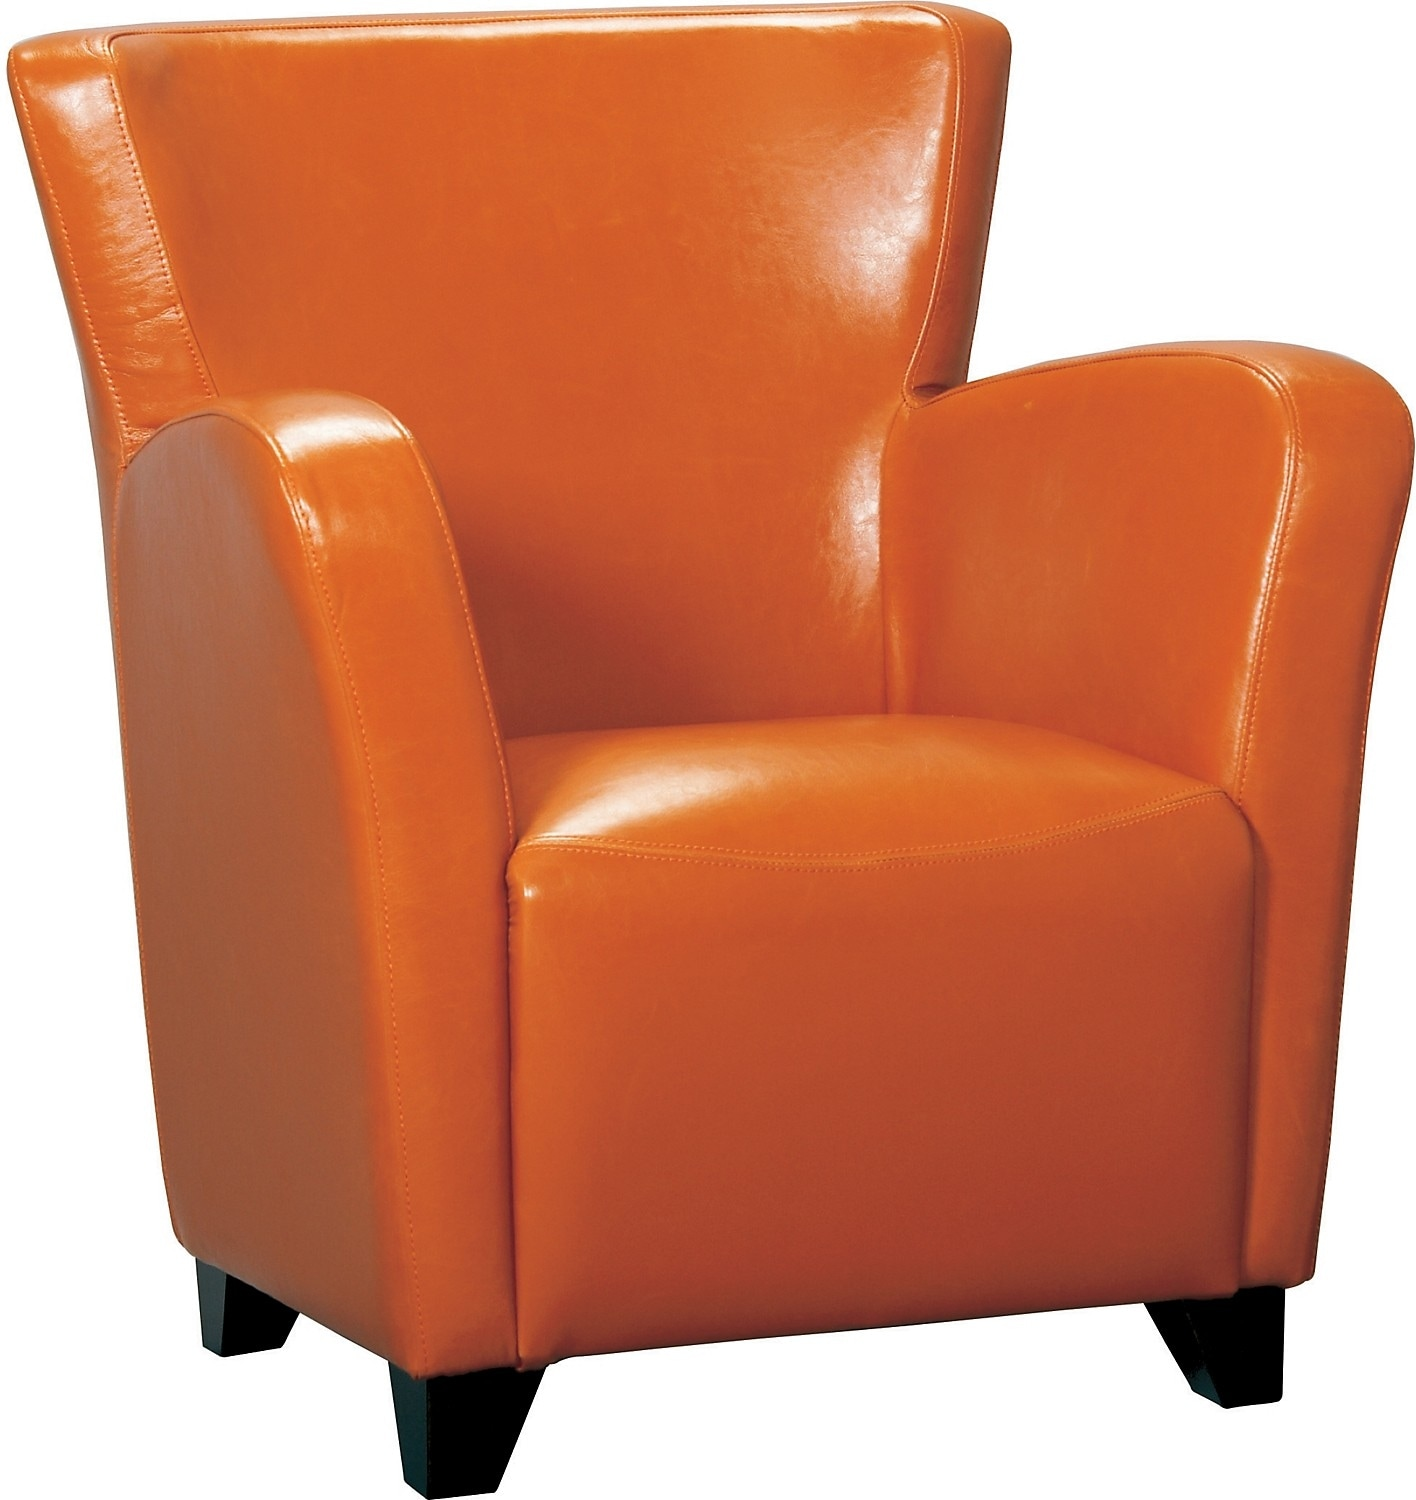 Living Room Furniture - Bonded Leather Chair - Spice